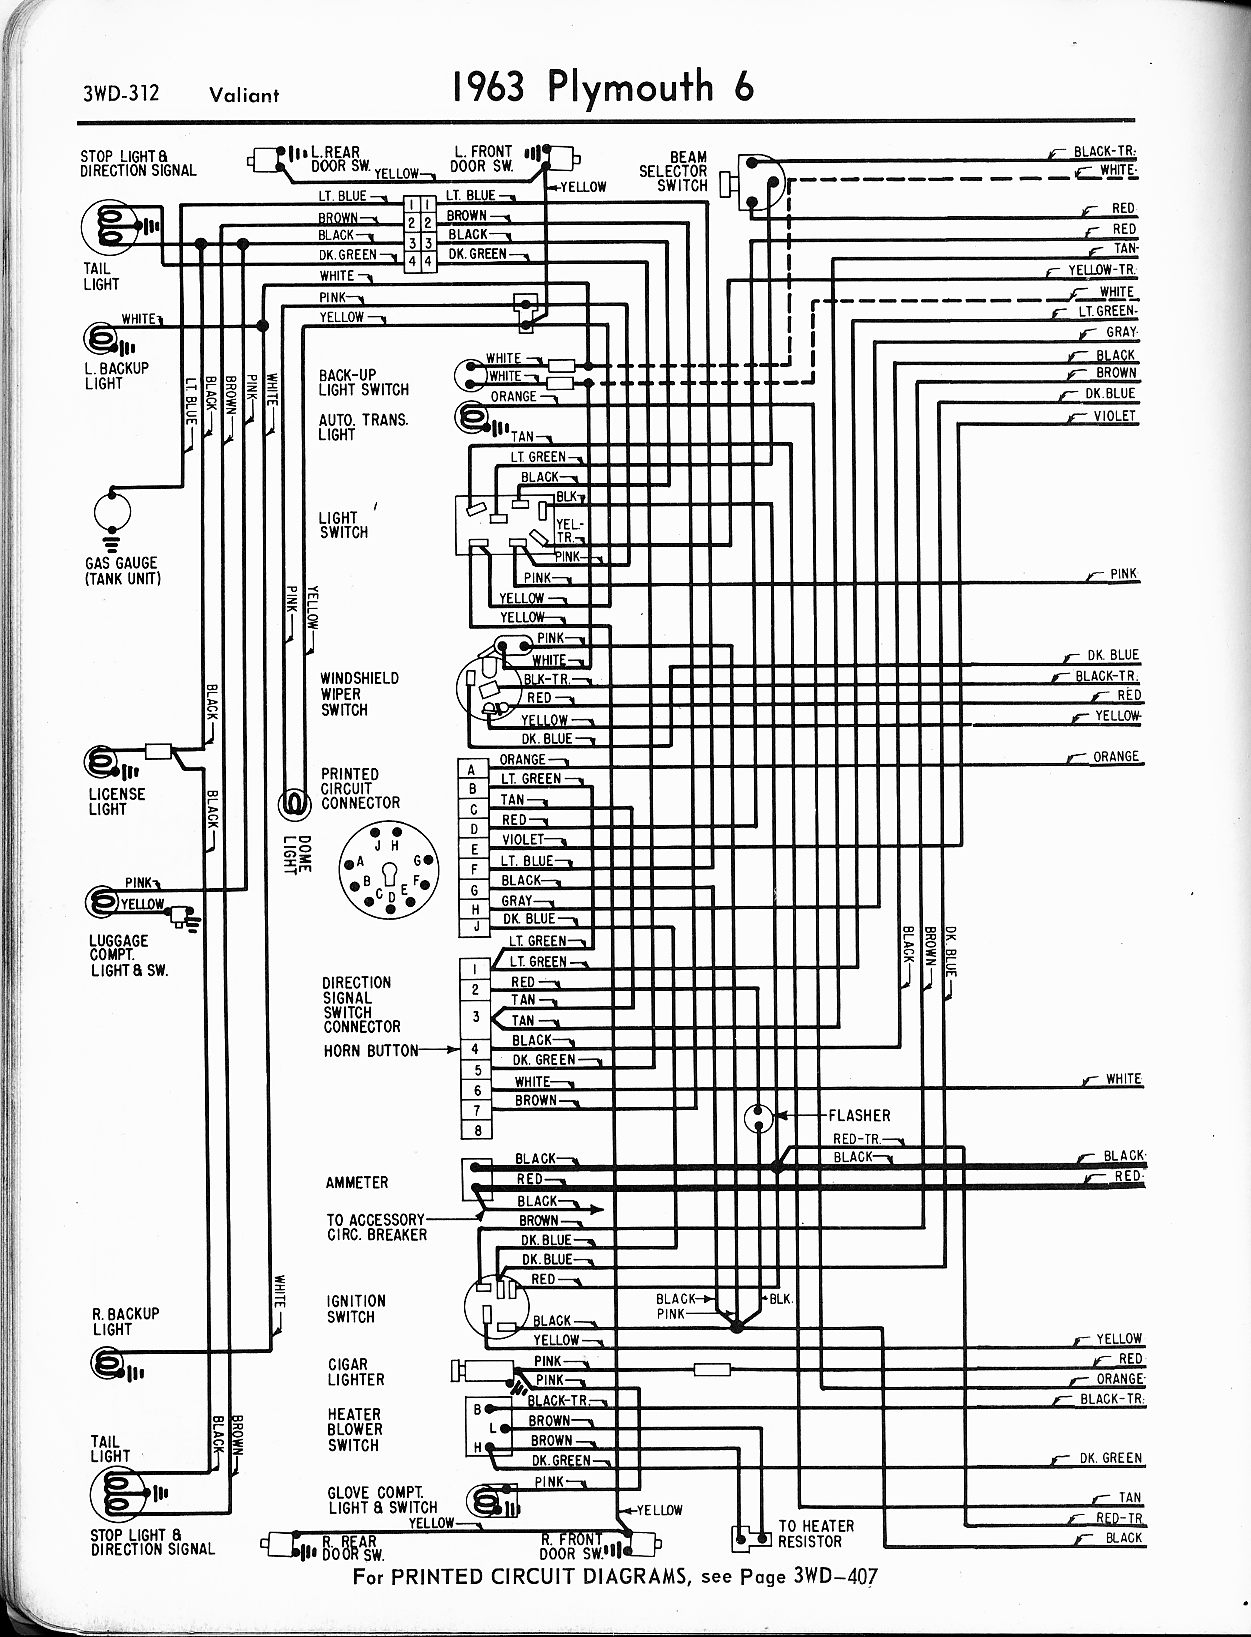 Wiring Diagrams 63 Model Year - Mopar Owners Group South Africa - Mopar Wiring Diagram